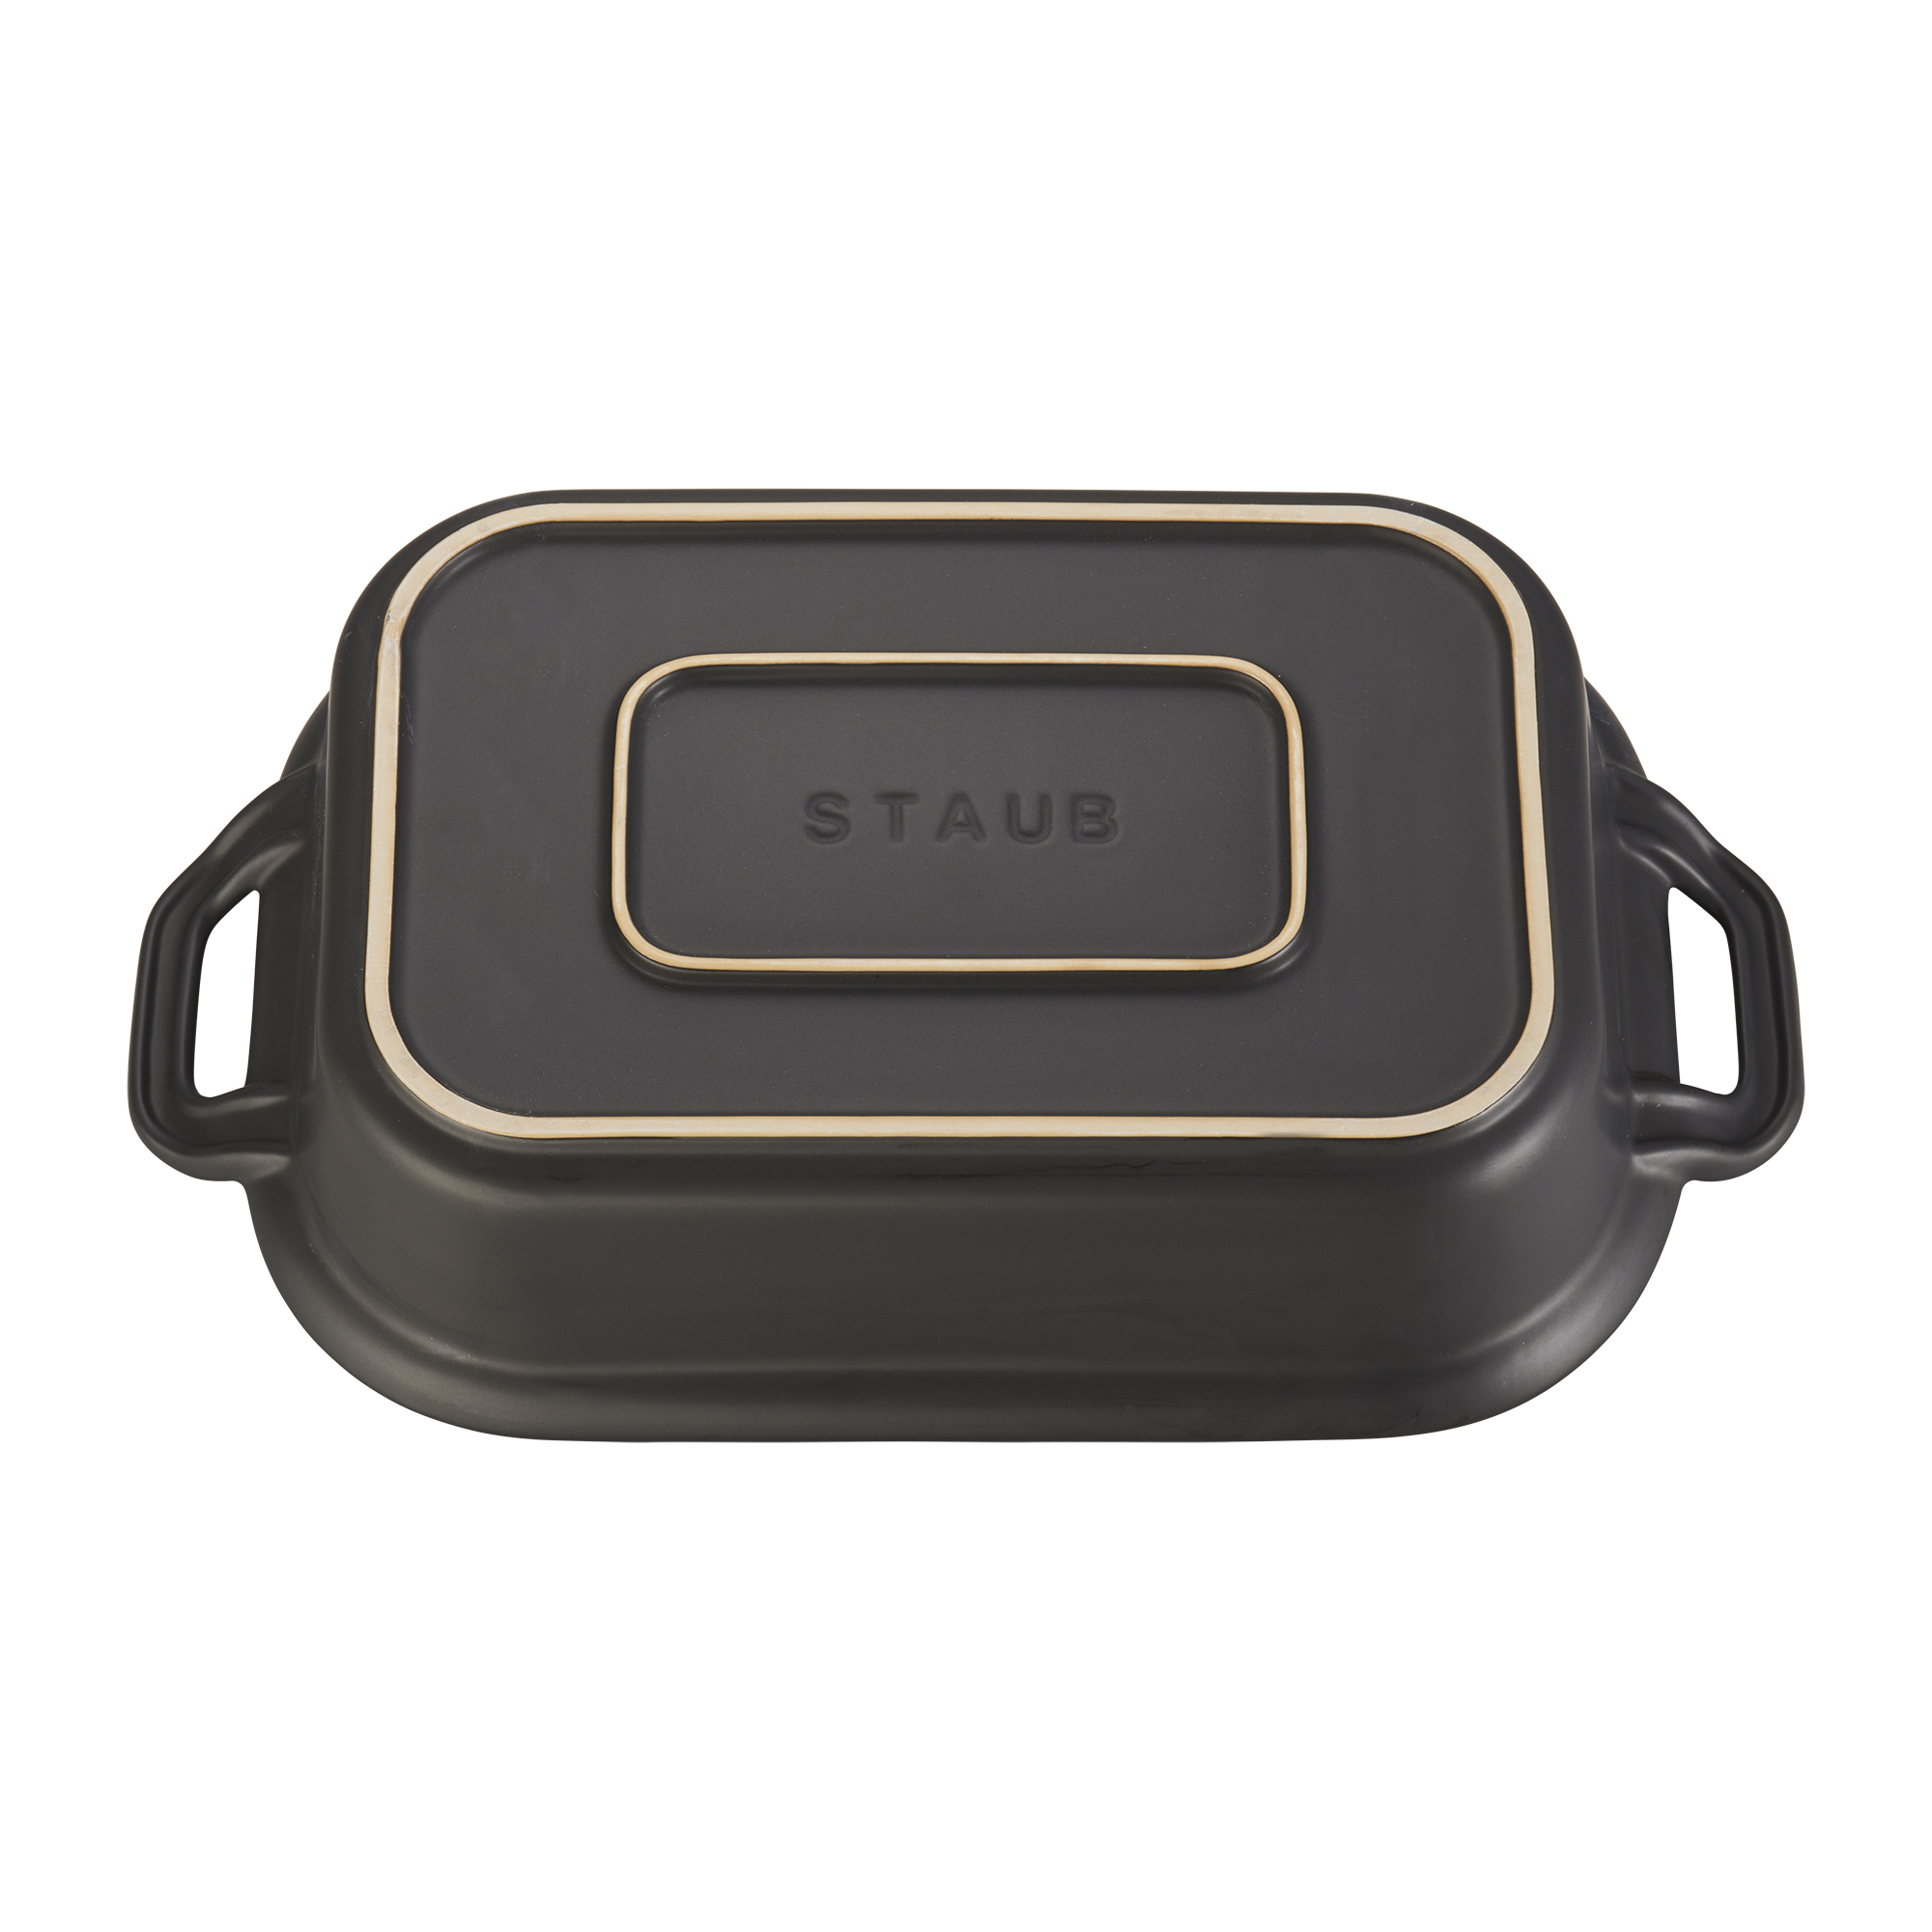 Staub Ceramic 12 Inch X 8 Inch Rectangular Covered Baking